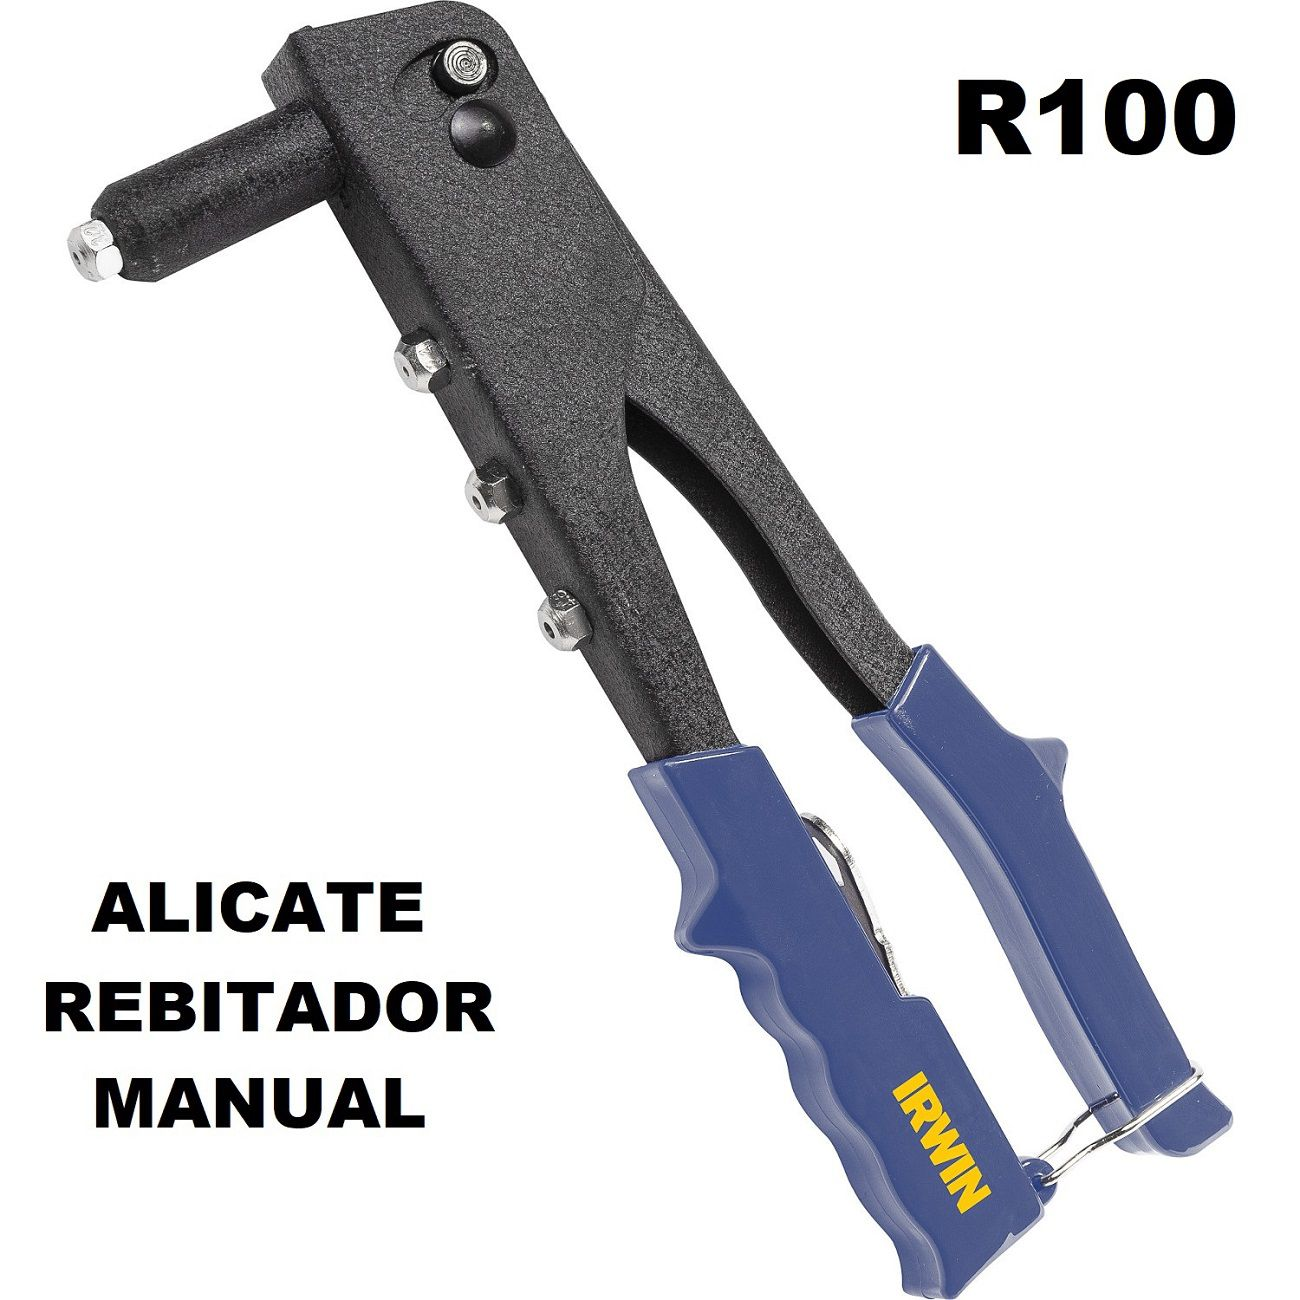 Alicate Rebitador Manual R100 1886980 Irwin